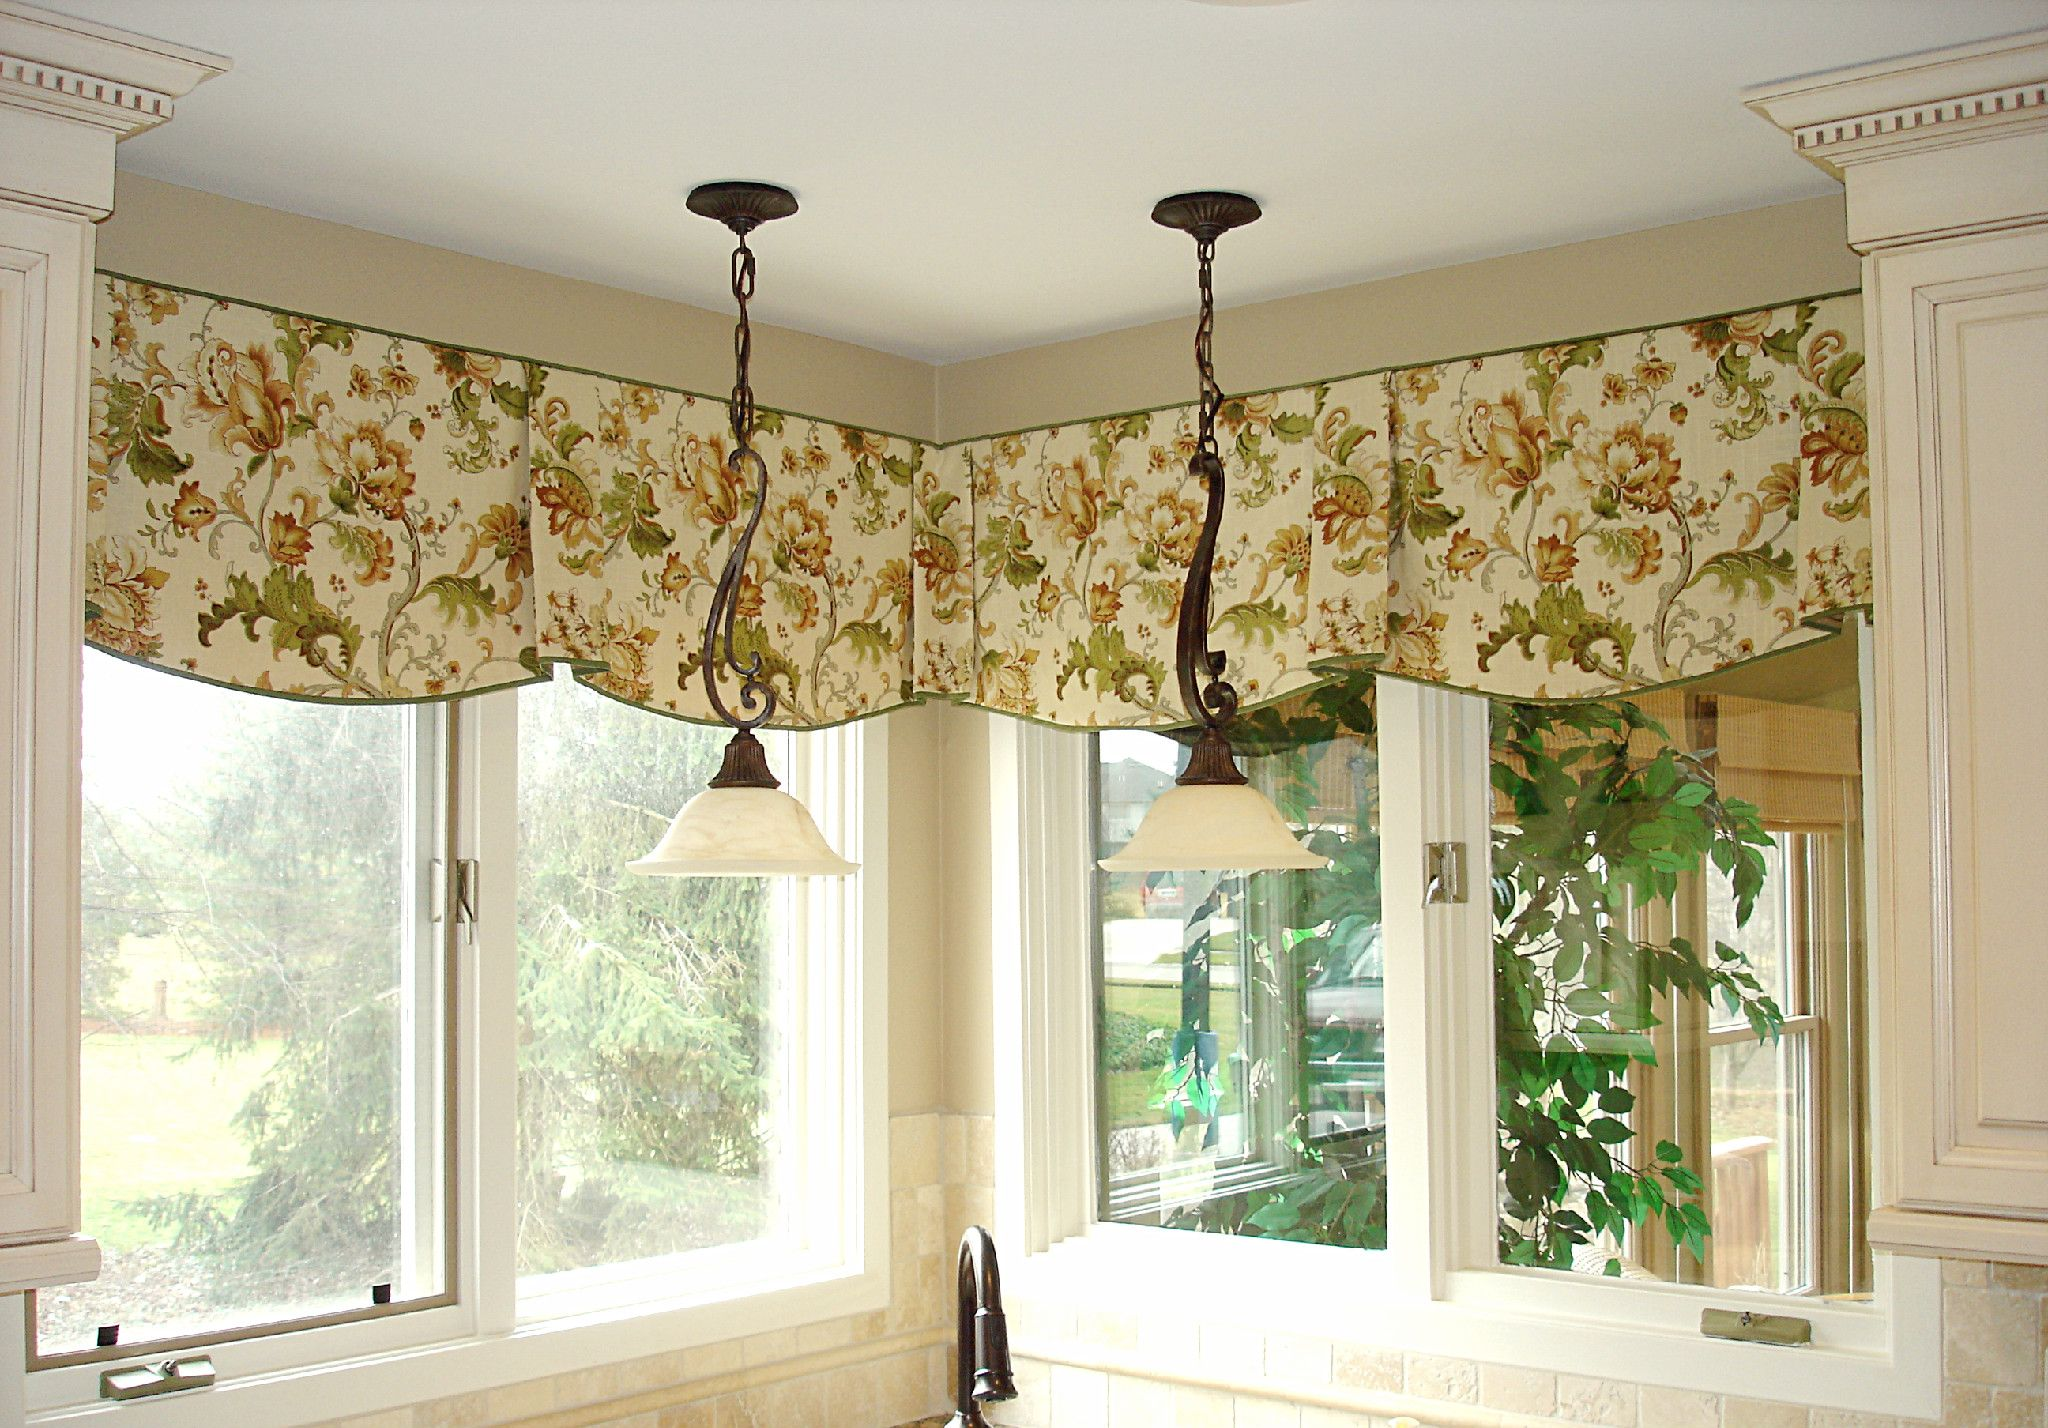 Valence ideas sewing projects pinterest kitchen curtains